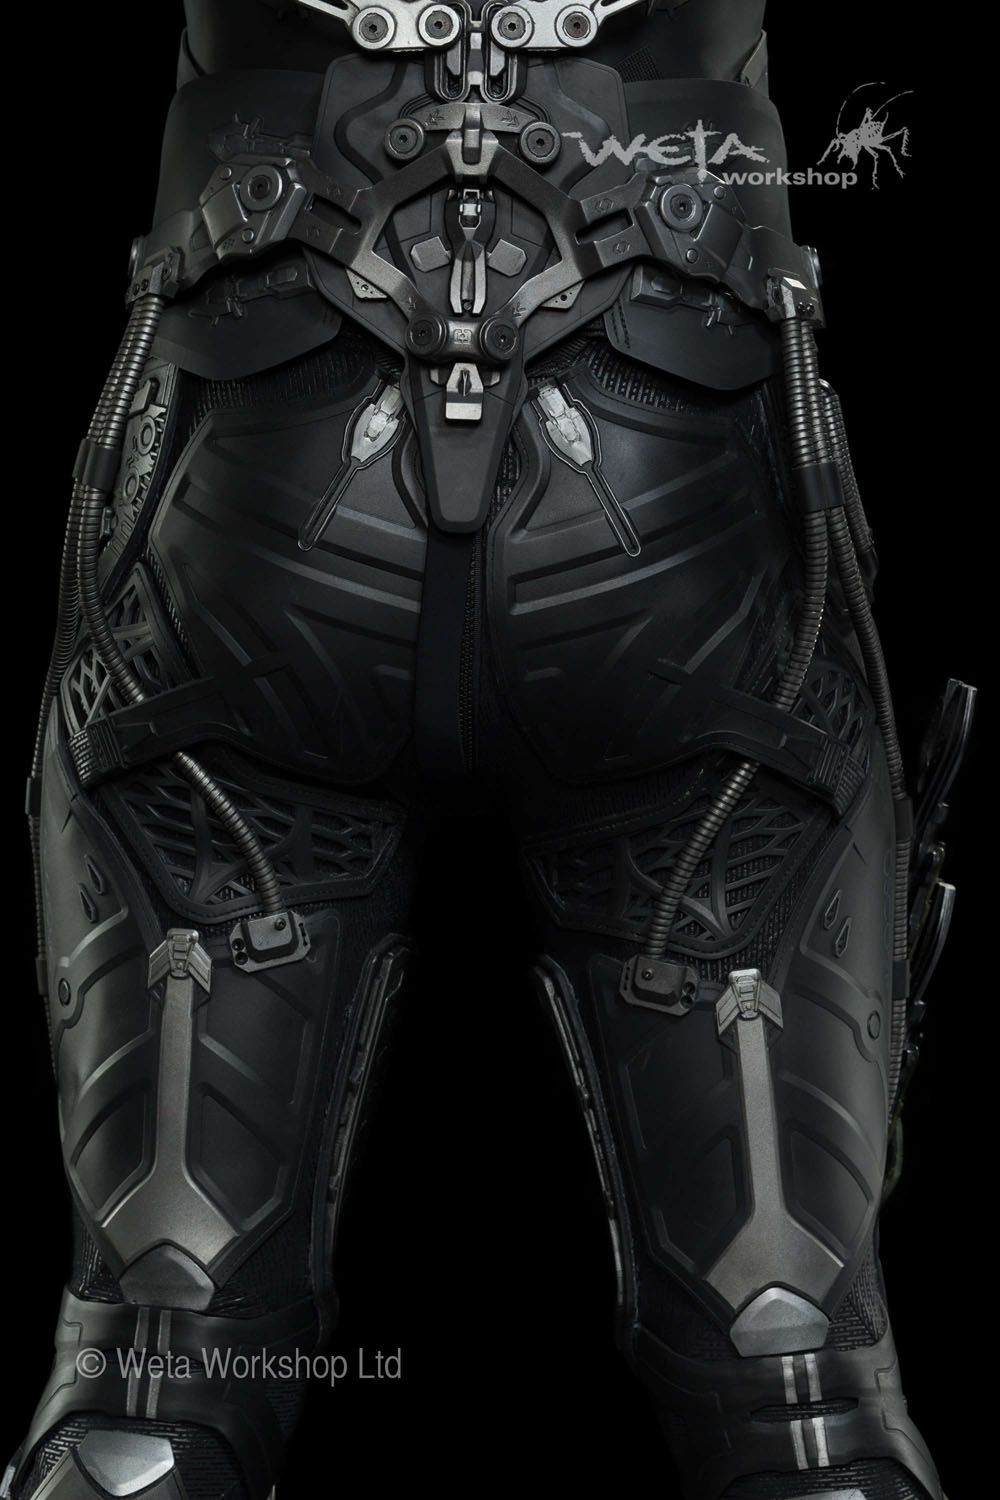 Pin by begudman on Armor piece | Futuristic armour, Combat ...